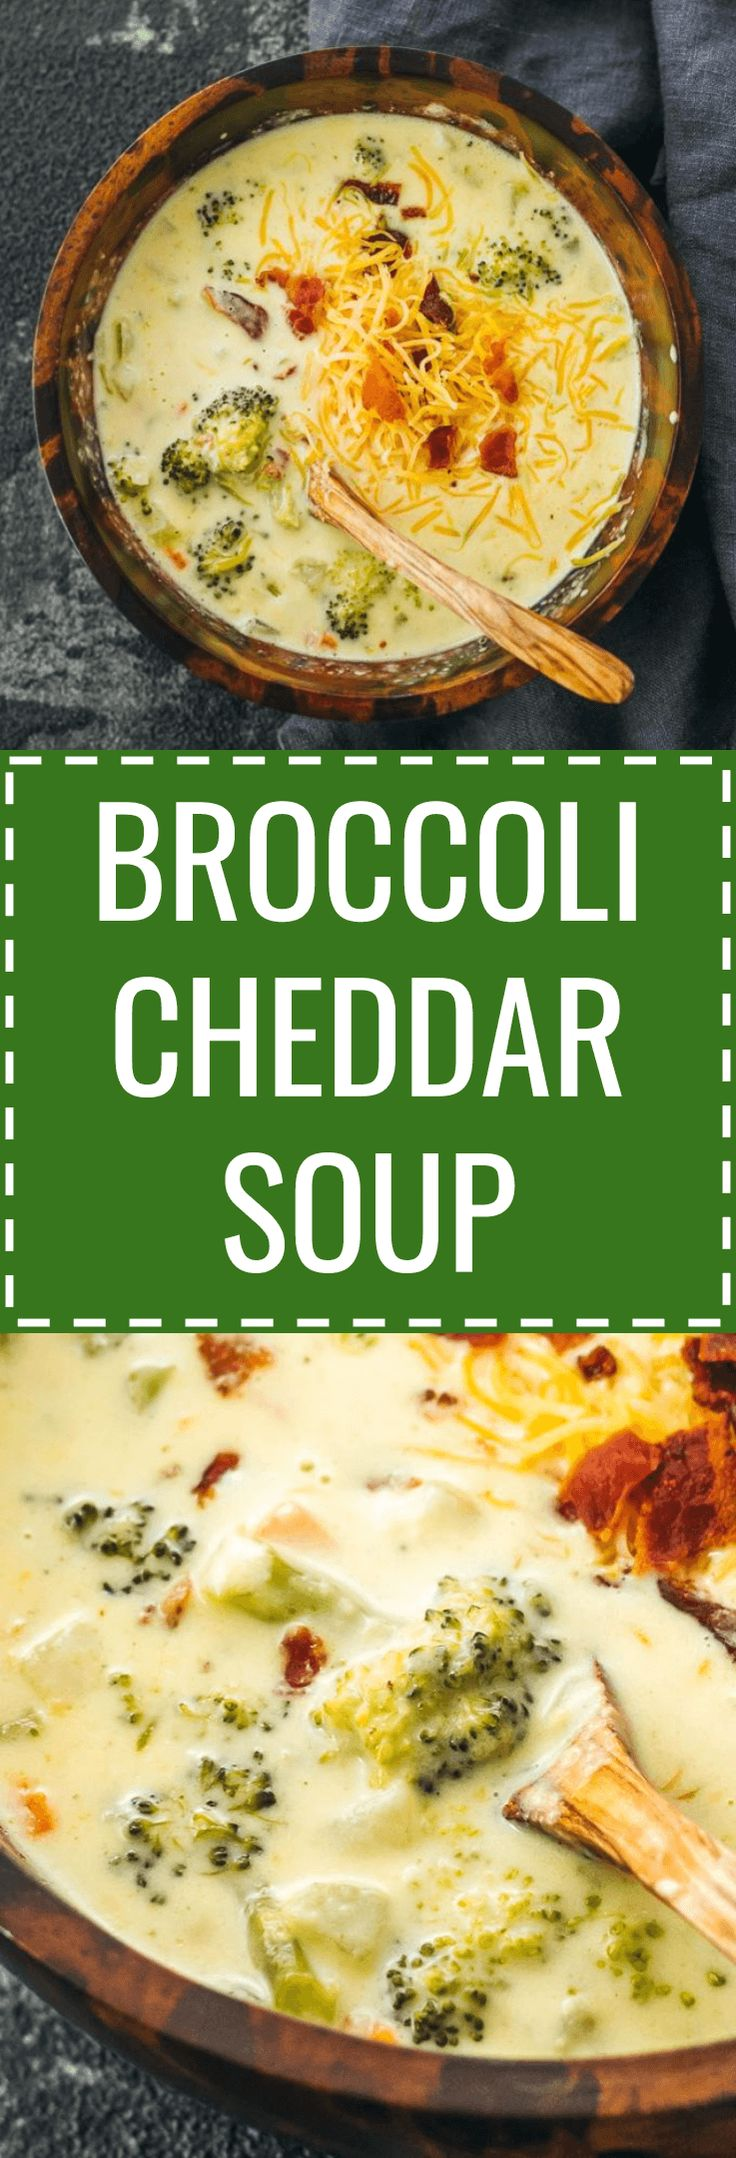 Broccoli cheddar soup - It's easy to make a broccoli cheddar cheese soup from scratch. Healthy and low carb. panera / keto / low carb / diet / atkins / induction / meals / recipes / easy / dinner / lunch / foods / healthy / gluten free / paleo / recipe / best / creamy / homemade / copycat / sides / stove top / simple / copy cat / light / how to make / clean / for a crowd / with bacon / chunky / loaded / meal / no flour / dutch oven / families / cooking / winter #soup #LowCarb